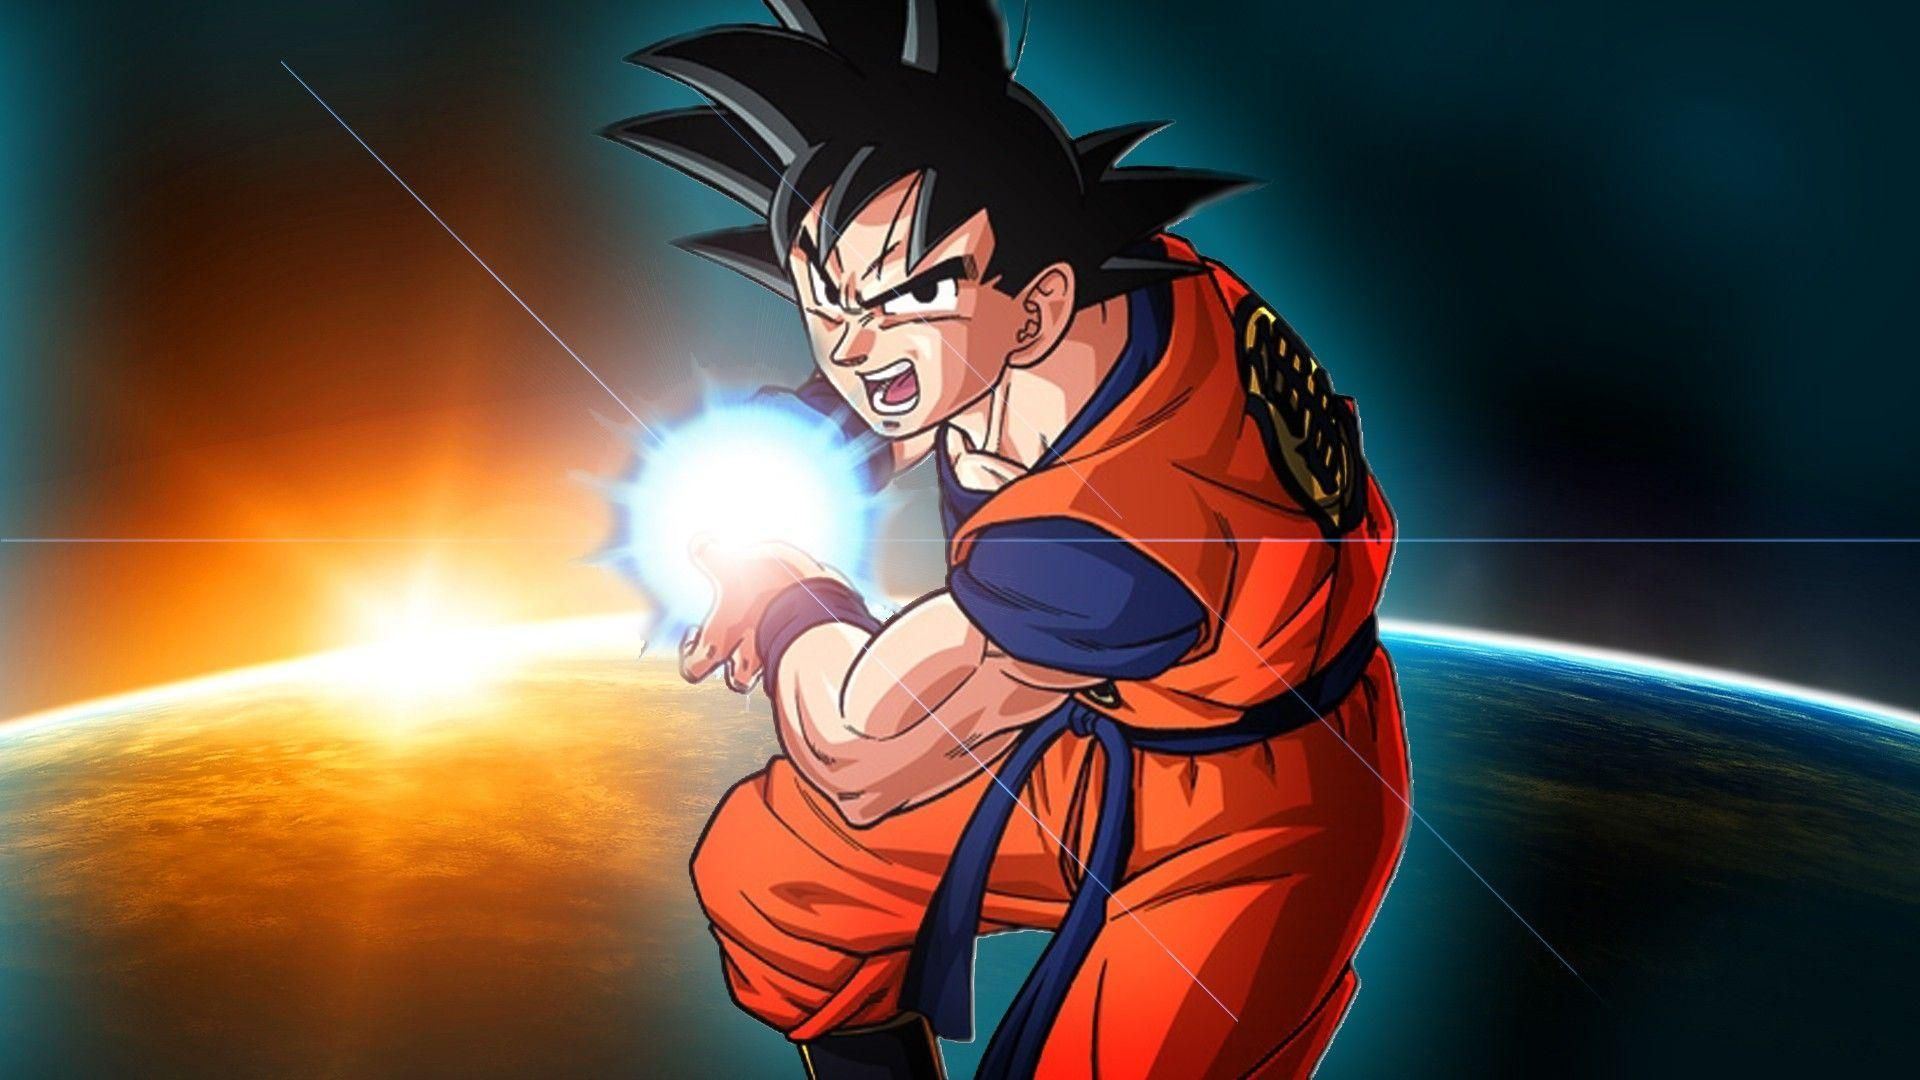 Wallpaper Dragon Ball Super Goku Di 2020